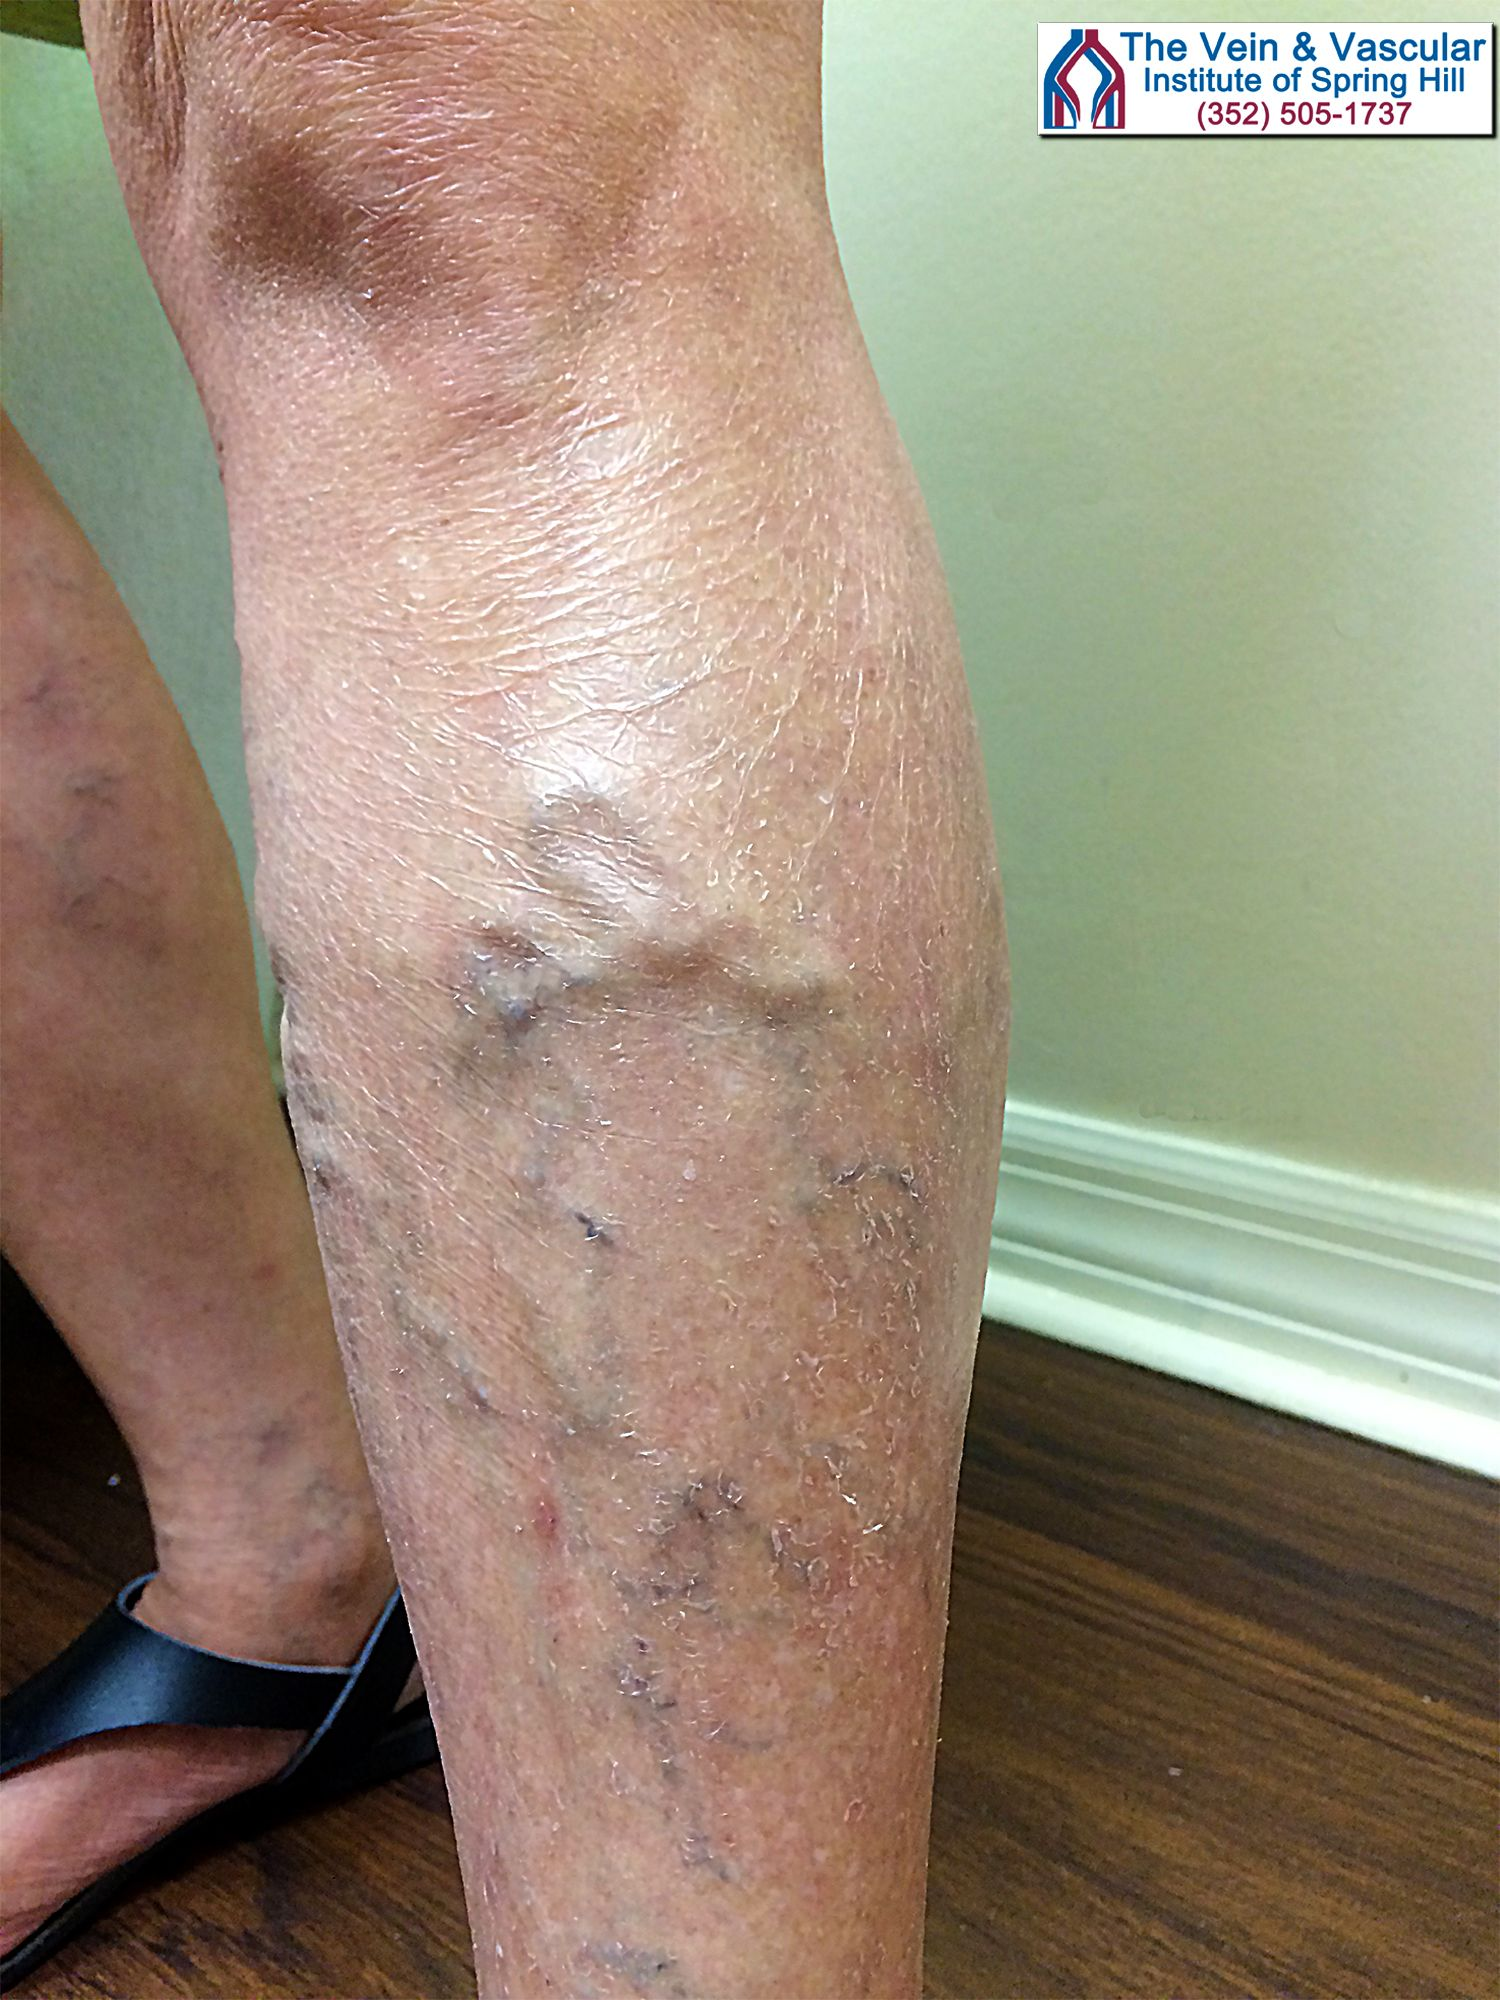 Flaky skin, varicose veins, spider veins and skin discoloration ...